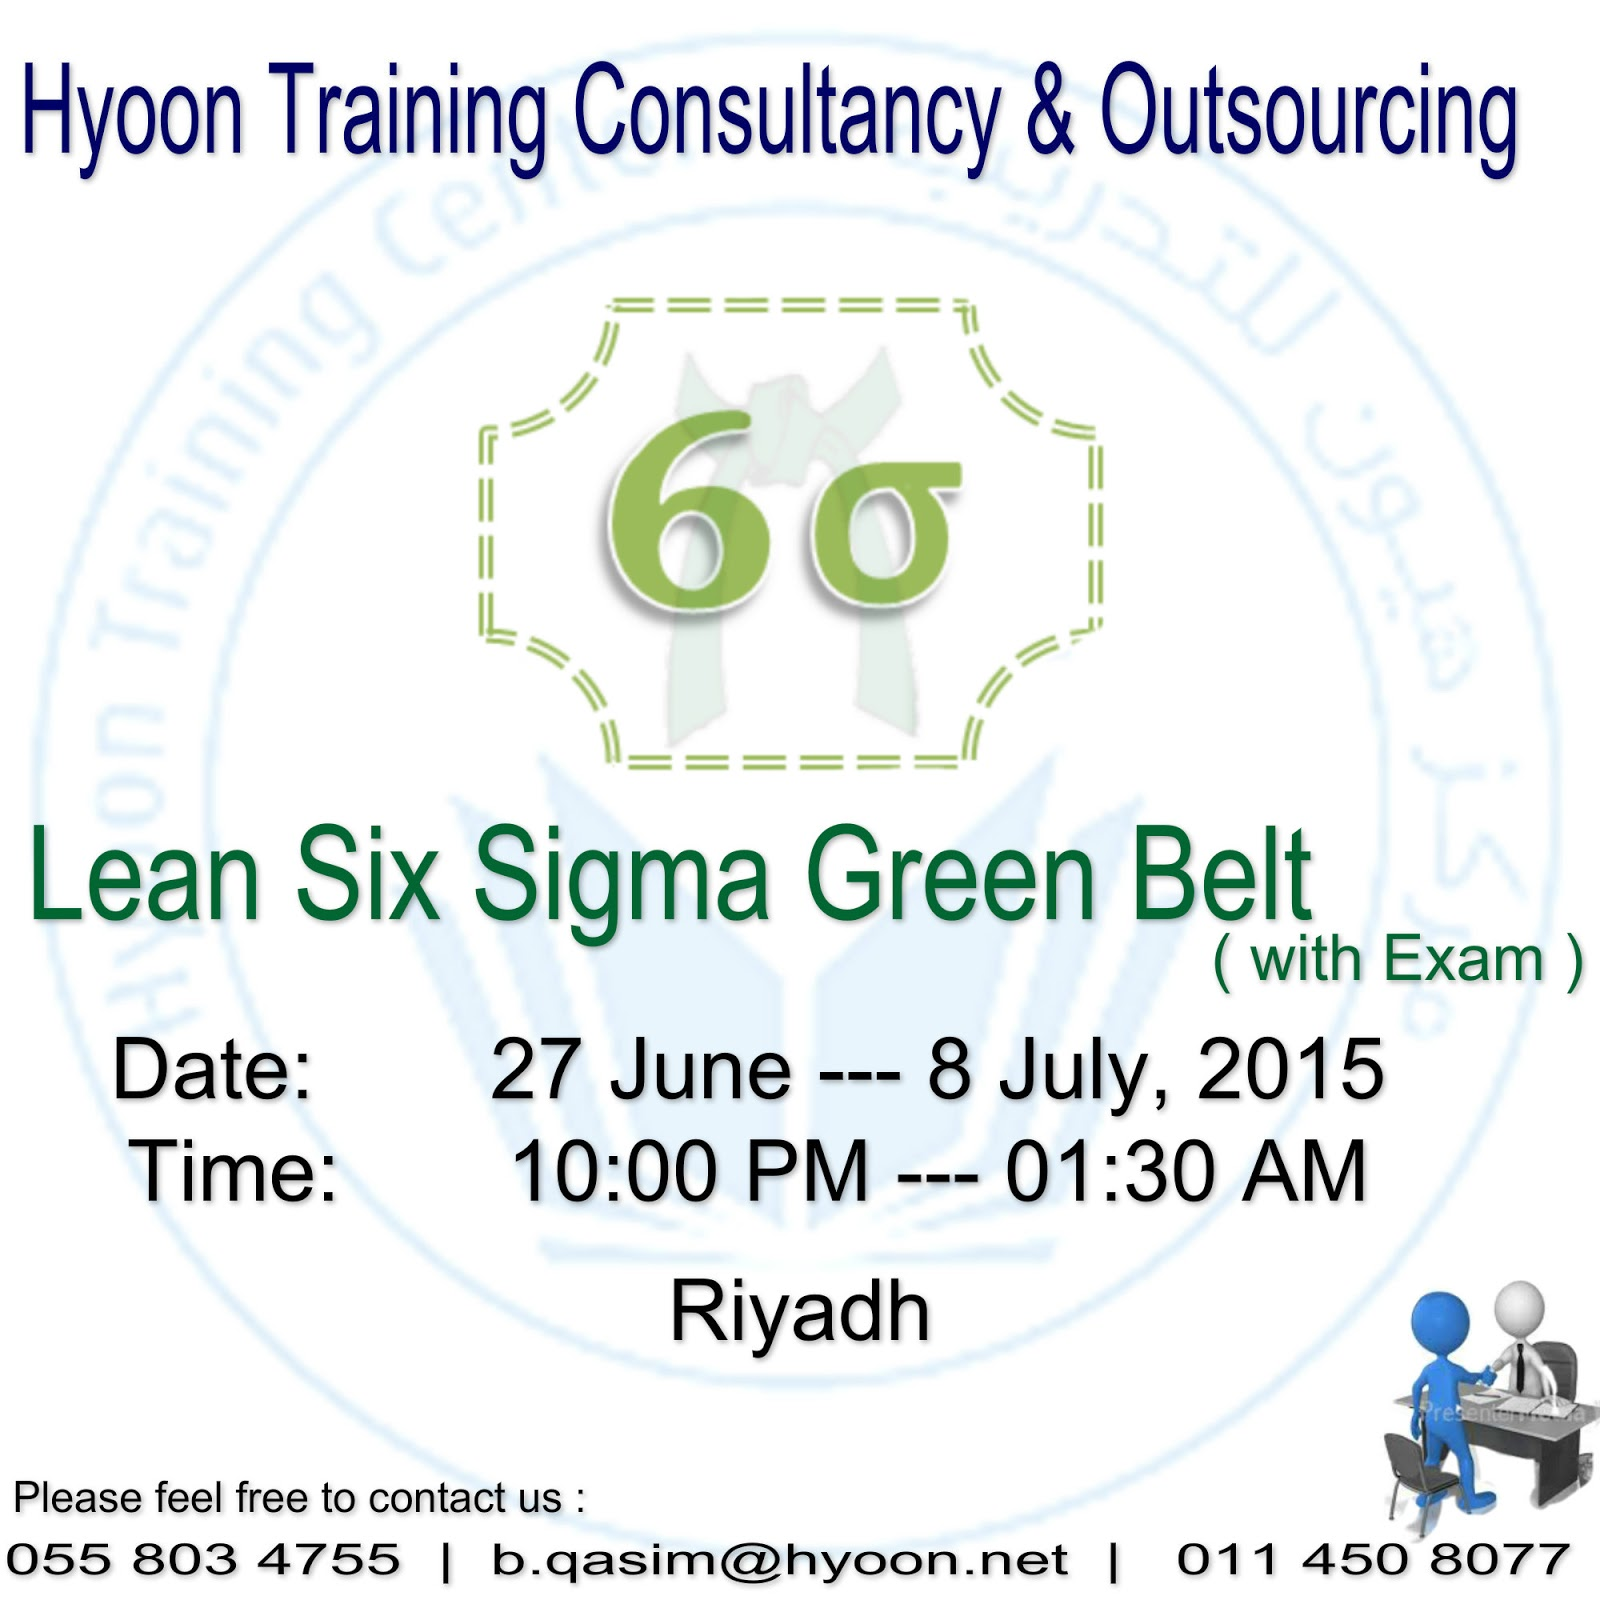 Itil pmp pmo lean six sigma in riyadh saudi arabia visit our site for more courses hyoon xflitez Gallery